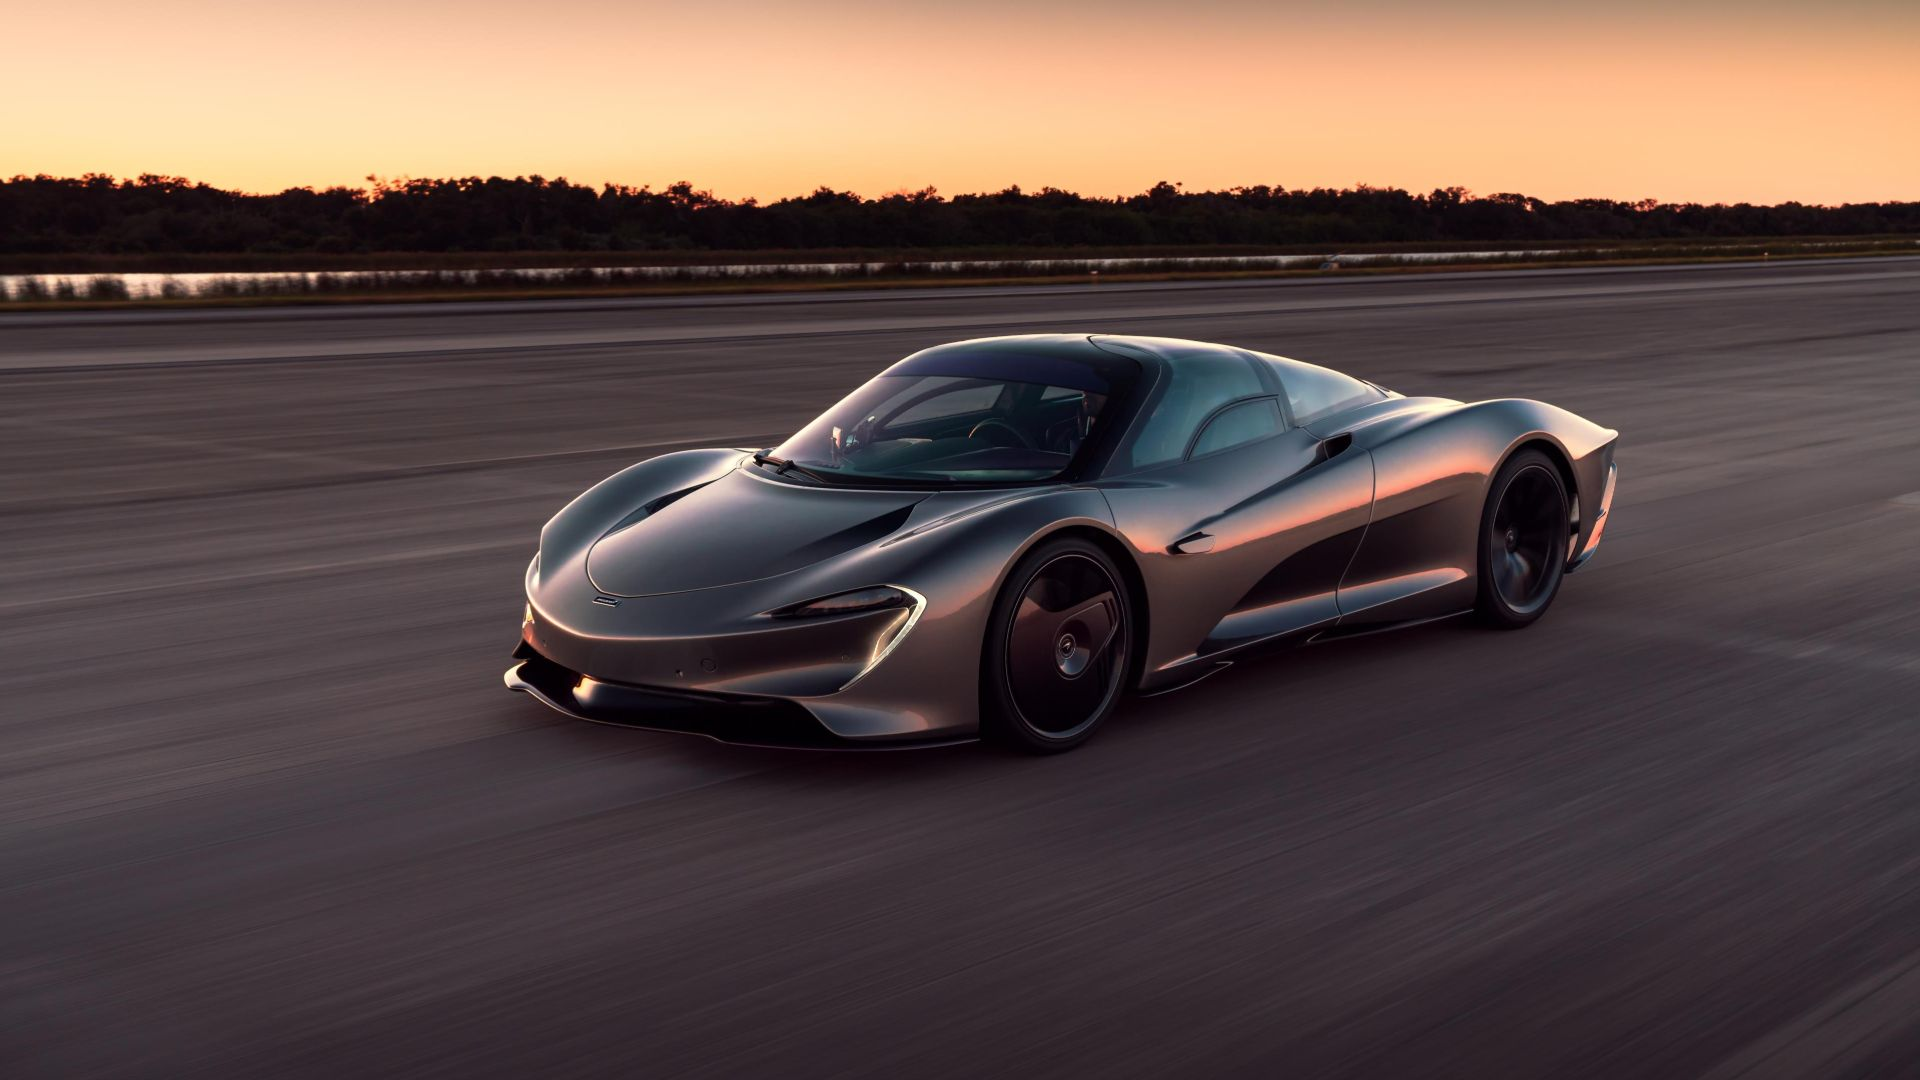 2020 McLaren Speedtail – 250mph